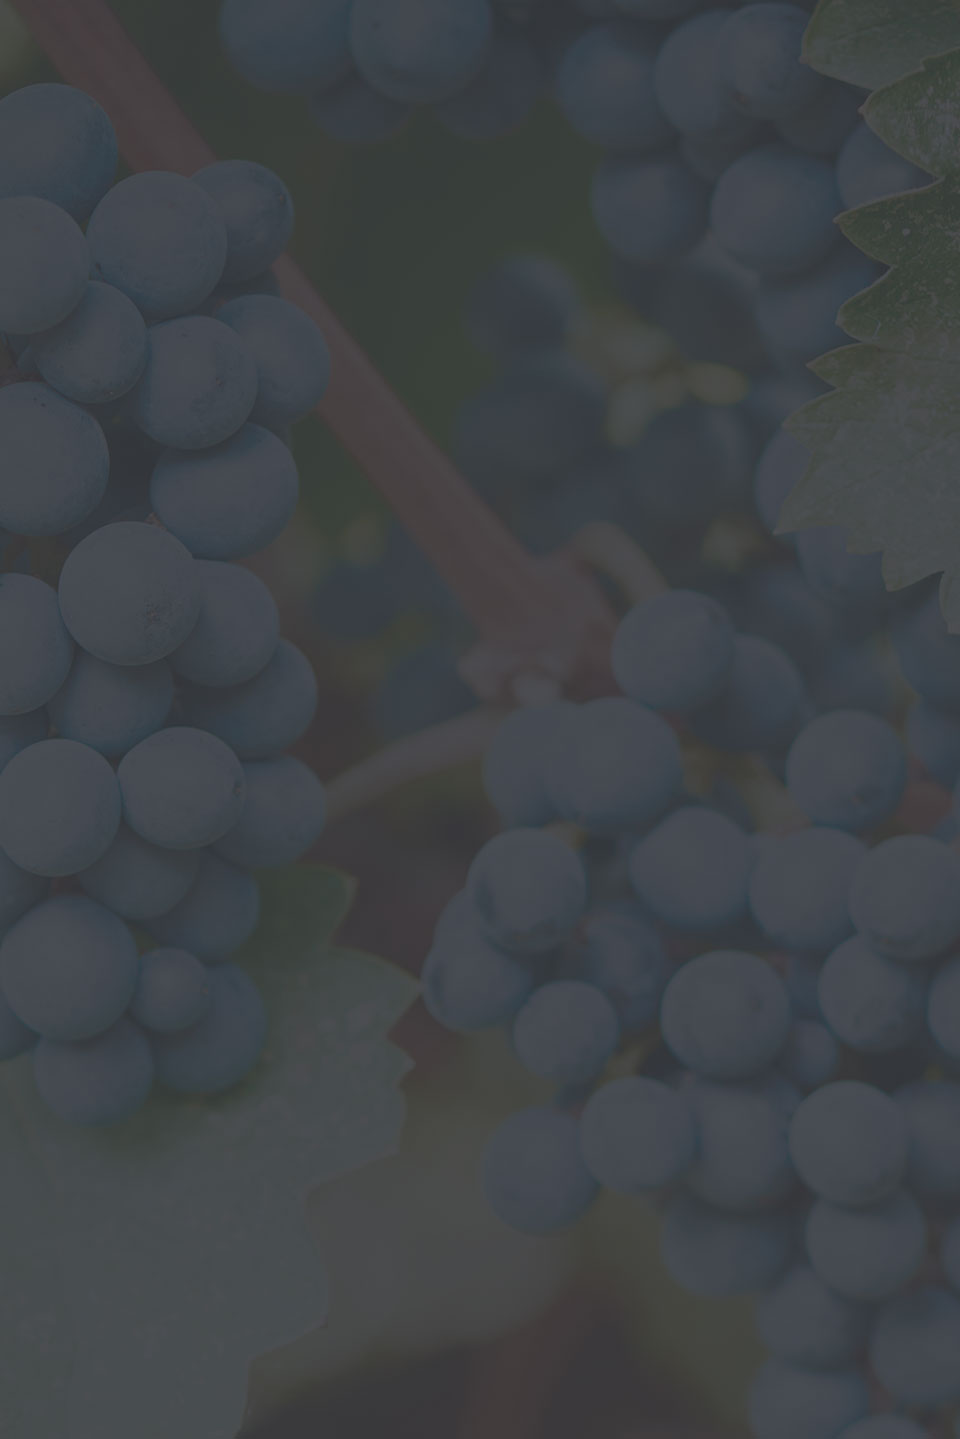 Preload Vineyards image